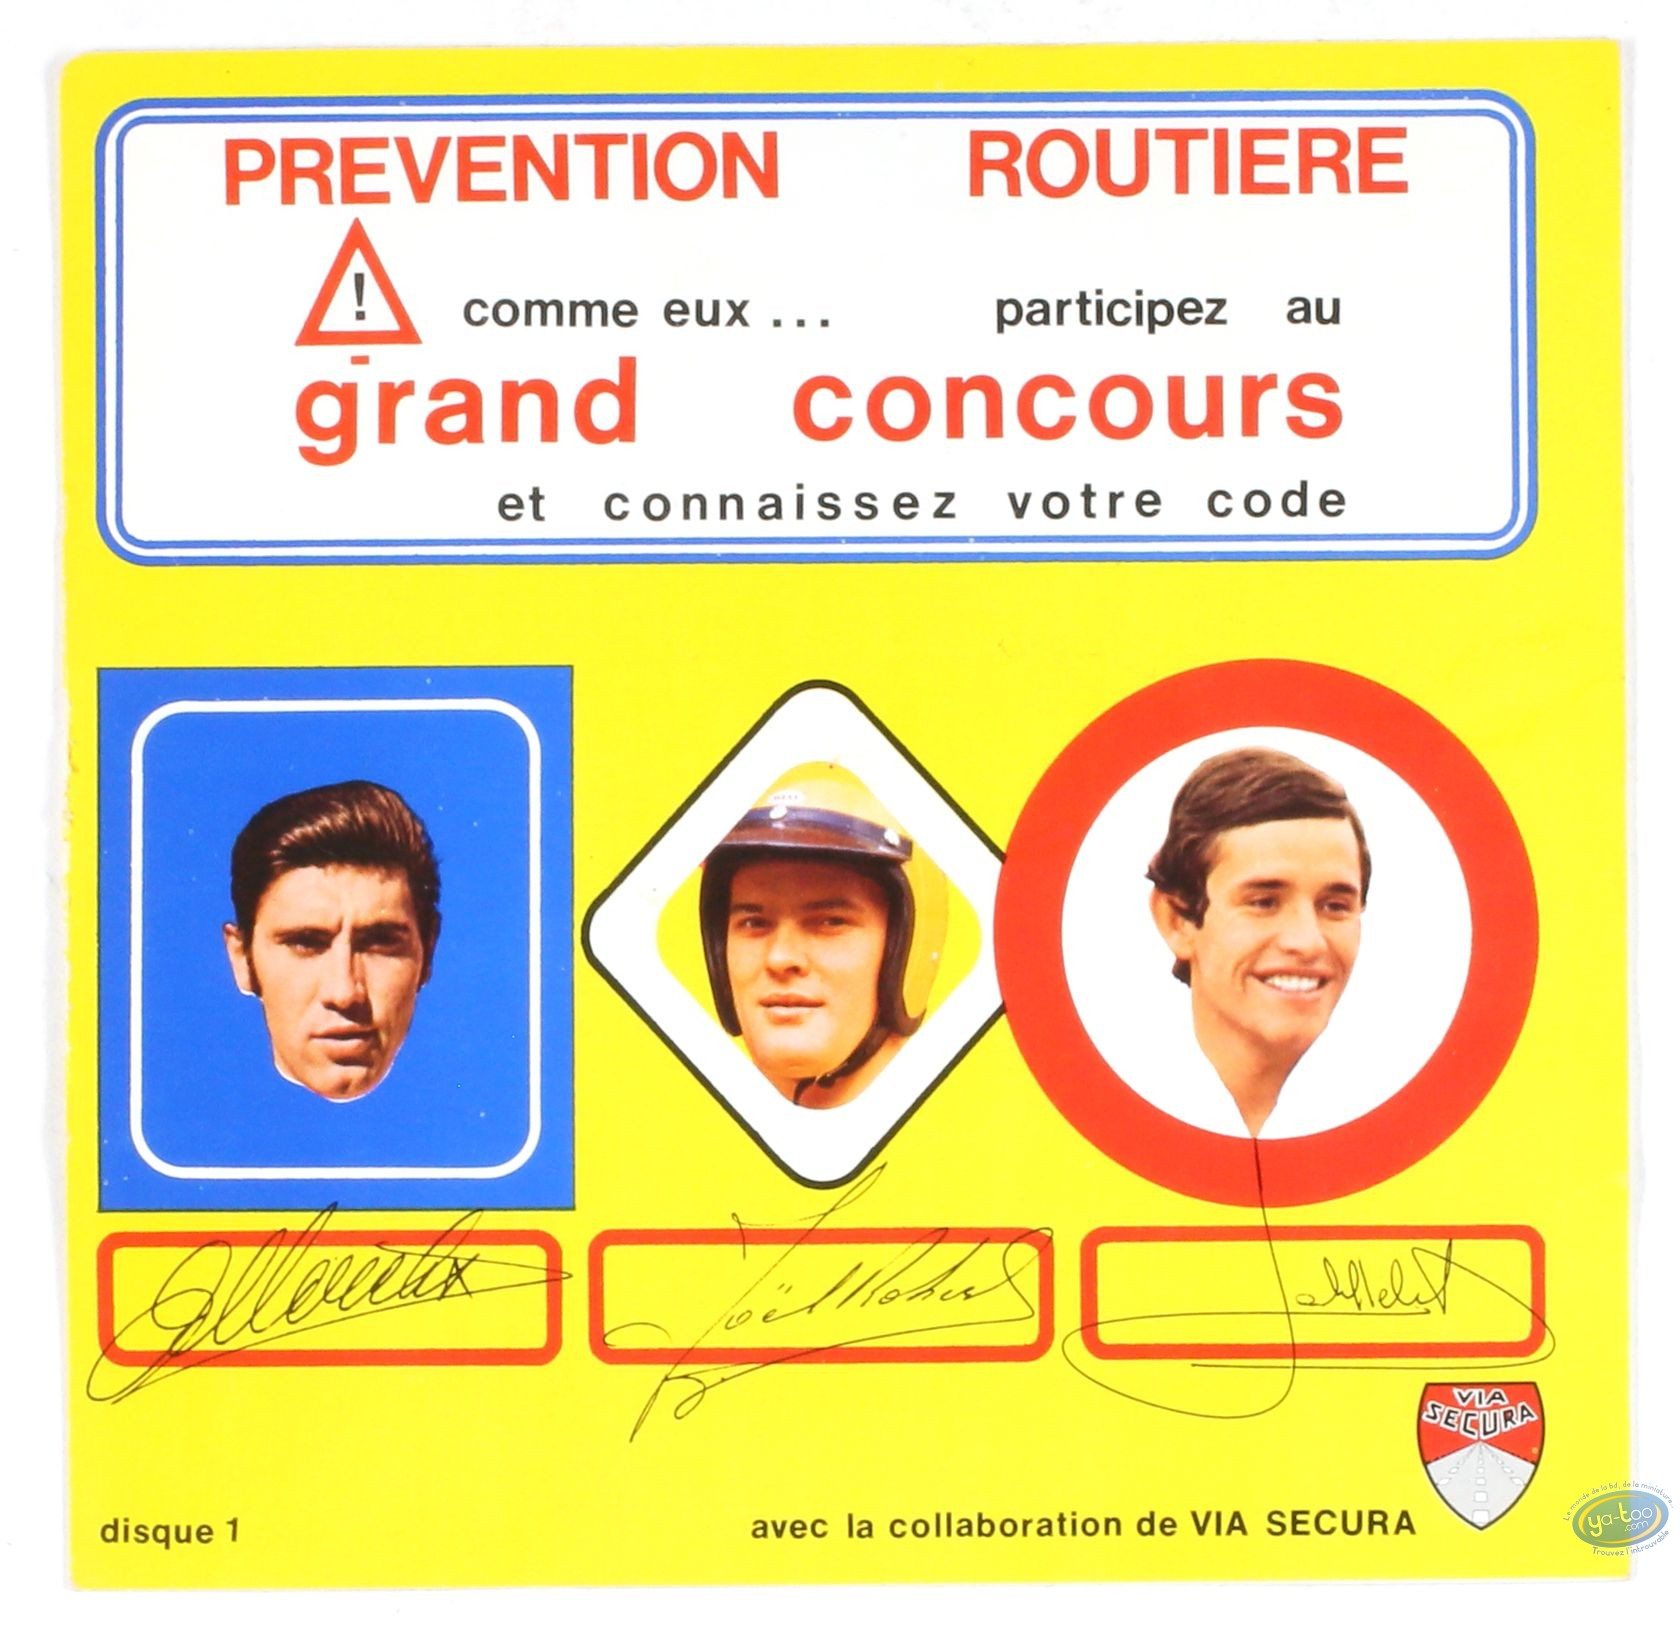 Advertising object, Michel Vaillant : Disk competition Road accident prevention Michel Vaillant / Eddy Merckx, Jacky Ickx and Joël Robert